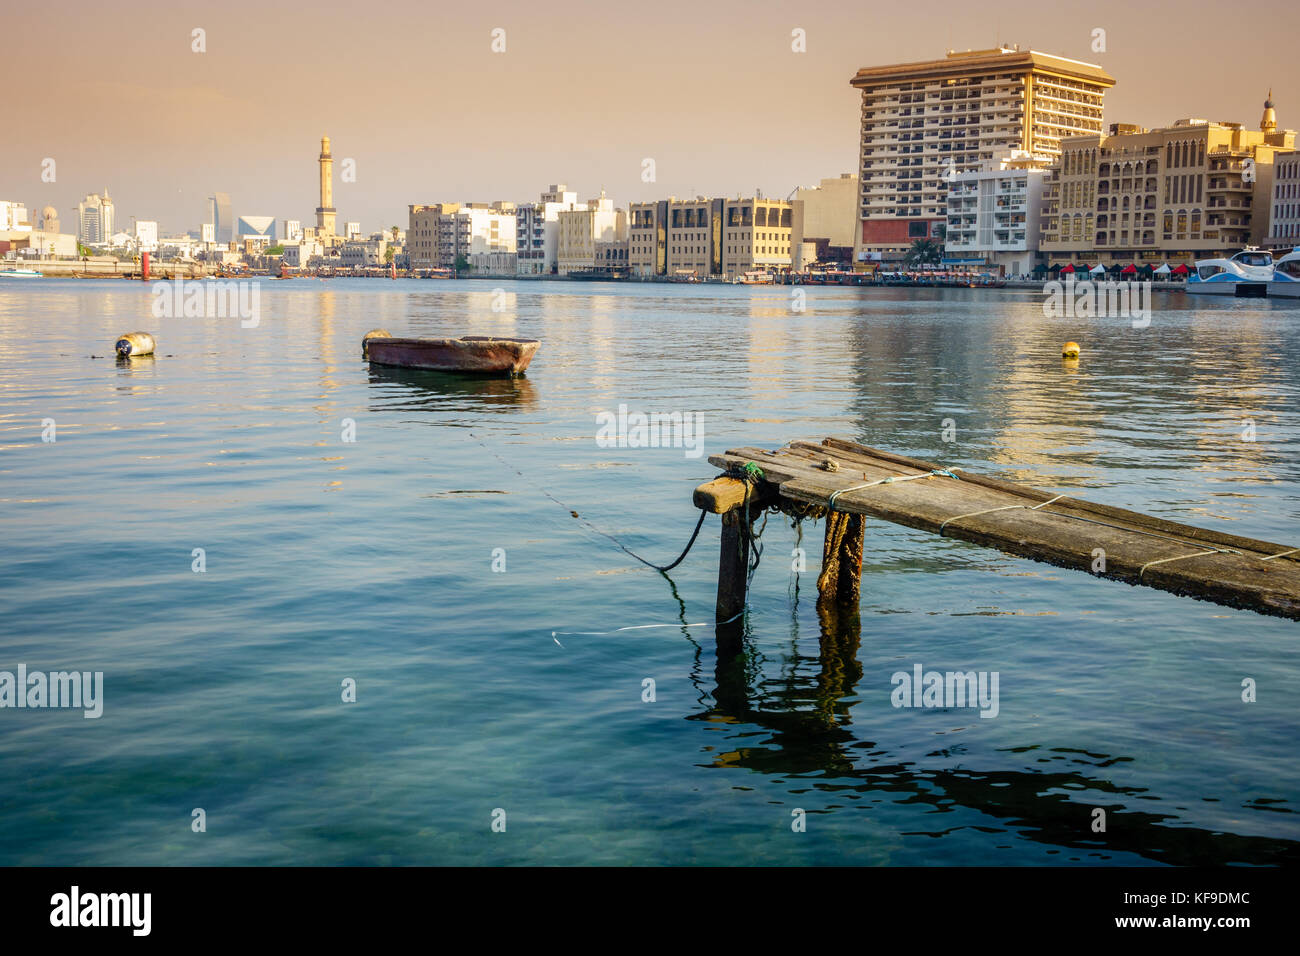 View of Dubai Creek and Deira skyline - Stock Image